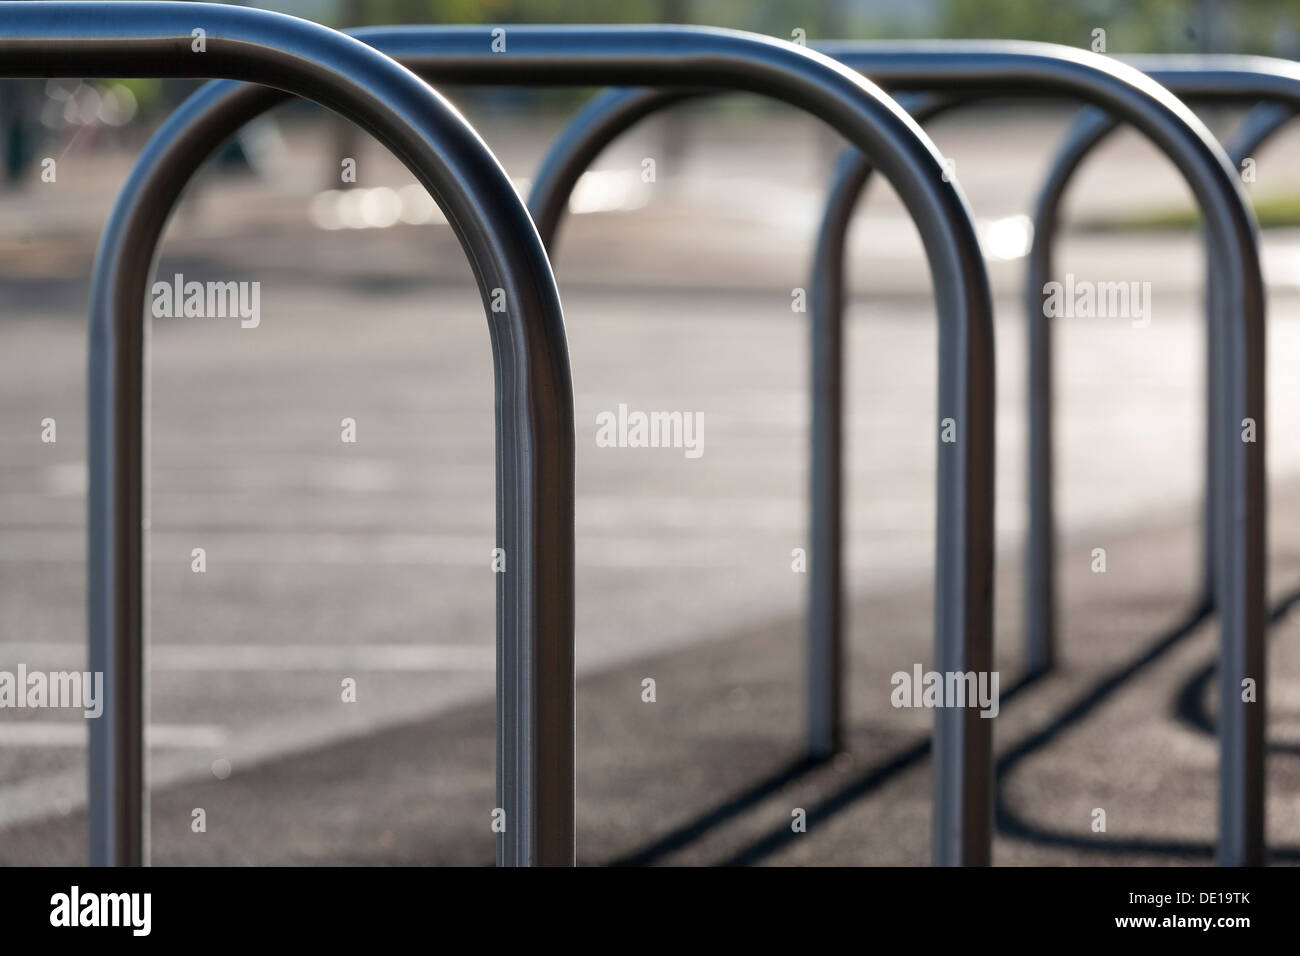 Close up rack for parking bikes at Olympic Copper Box, at the Queen Elizabeth Olympic Park, London, Landscape WP. - Stock Image